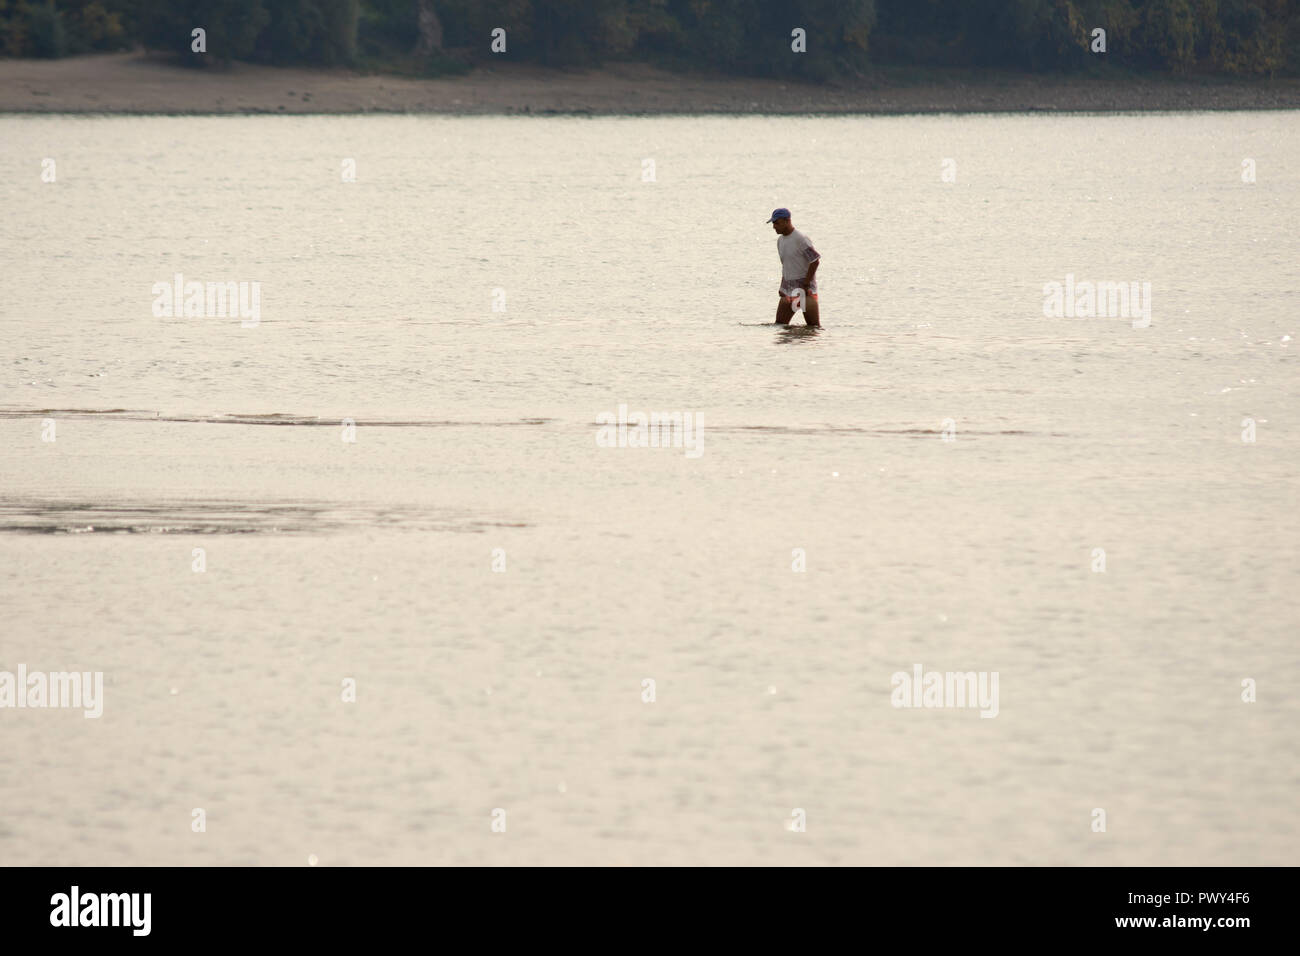 Novi Sad, Serbia 18 October 2018 The very low water level of the Danube river made sandbanks near city of Novi Sad in Serbia Credit: Nenad Mihajlovic/Alamy Live News - Stock Image